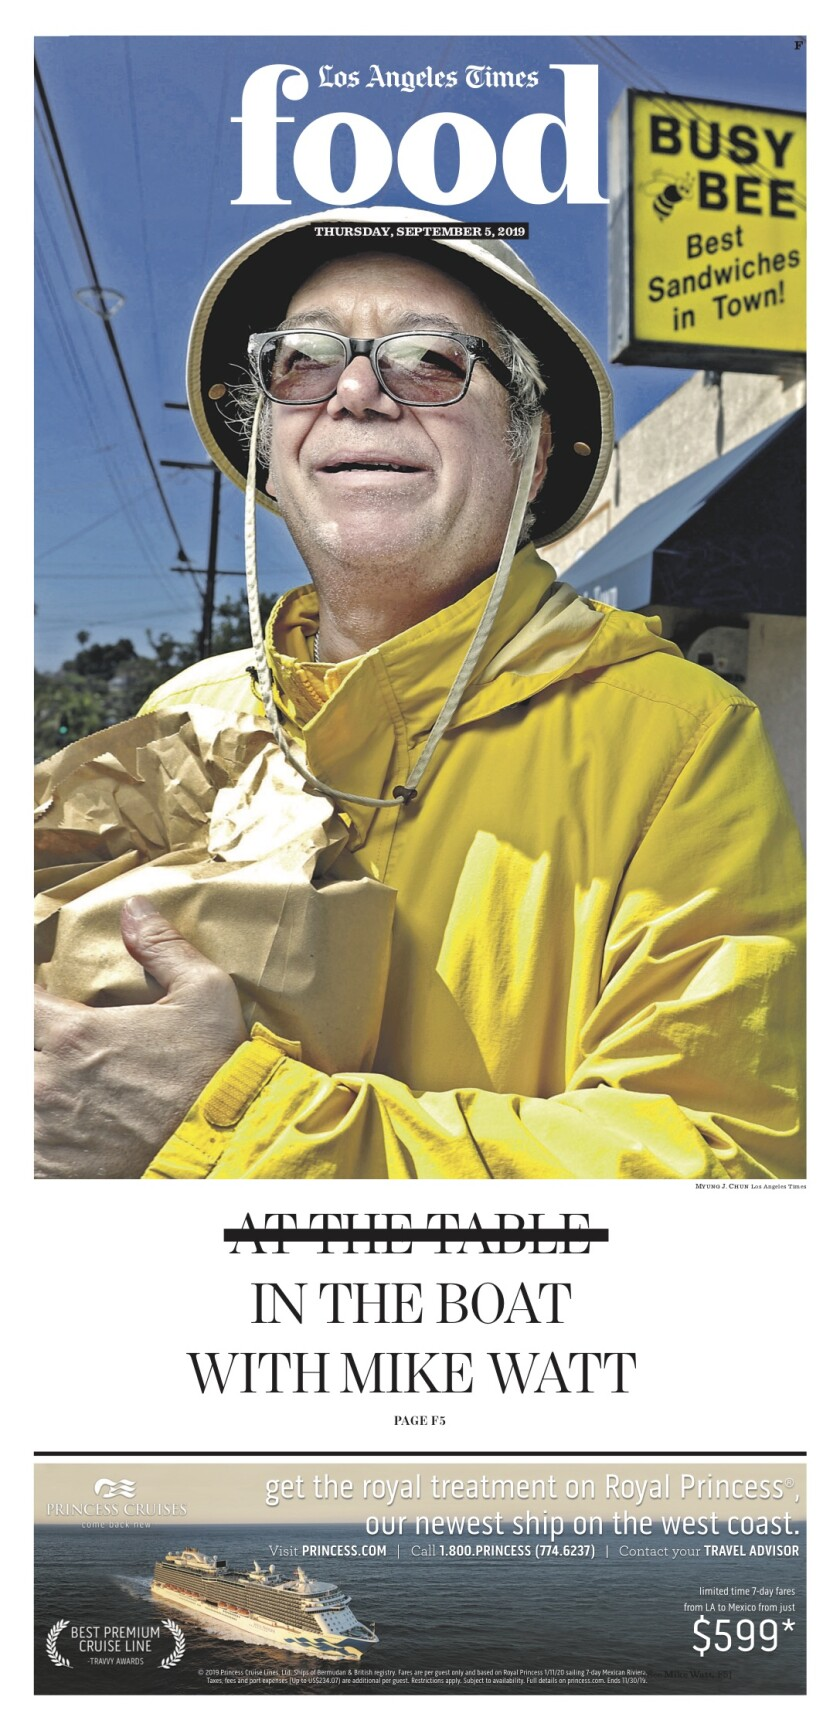 Los Angeles Times Food cover, September 5, 2019